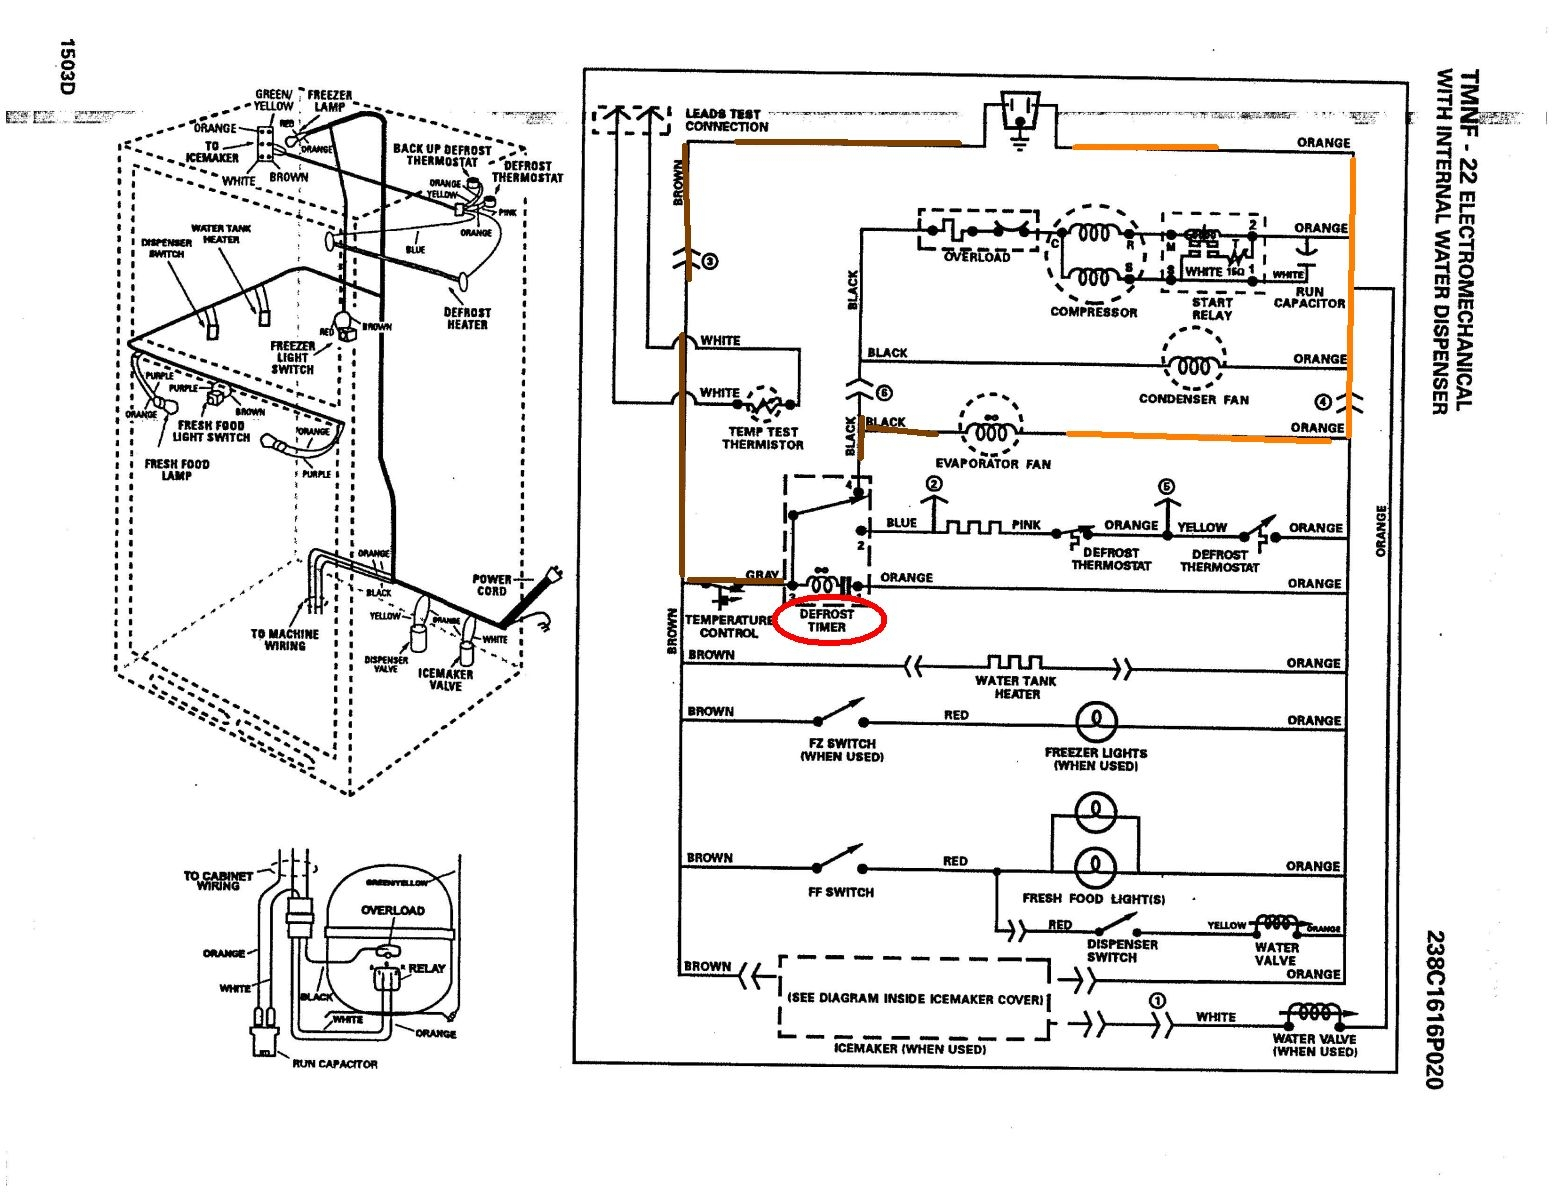 Ge Xl44 Oven Wiring Diagram - Wiring Diagrams Load Ge Spectra Electric Range Wiring Diagram on